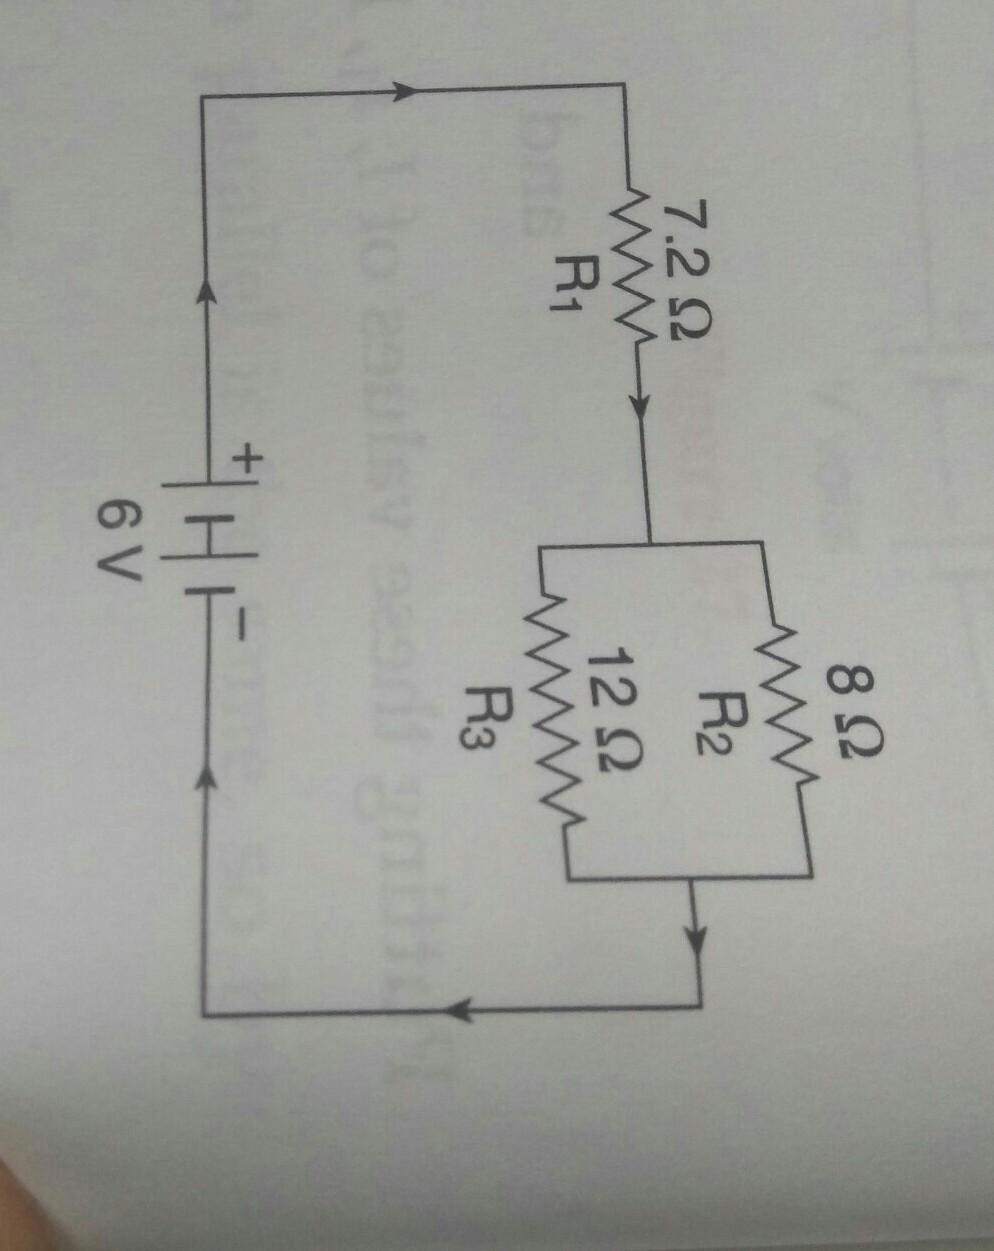 medium resolution of find thr answers as fast as u canin circuit diagram given alongsidedownload jpg